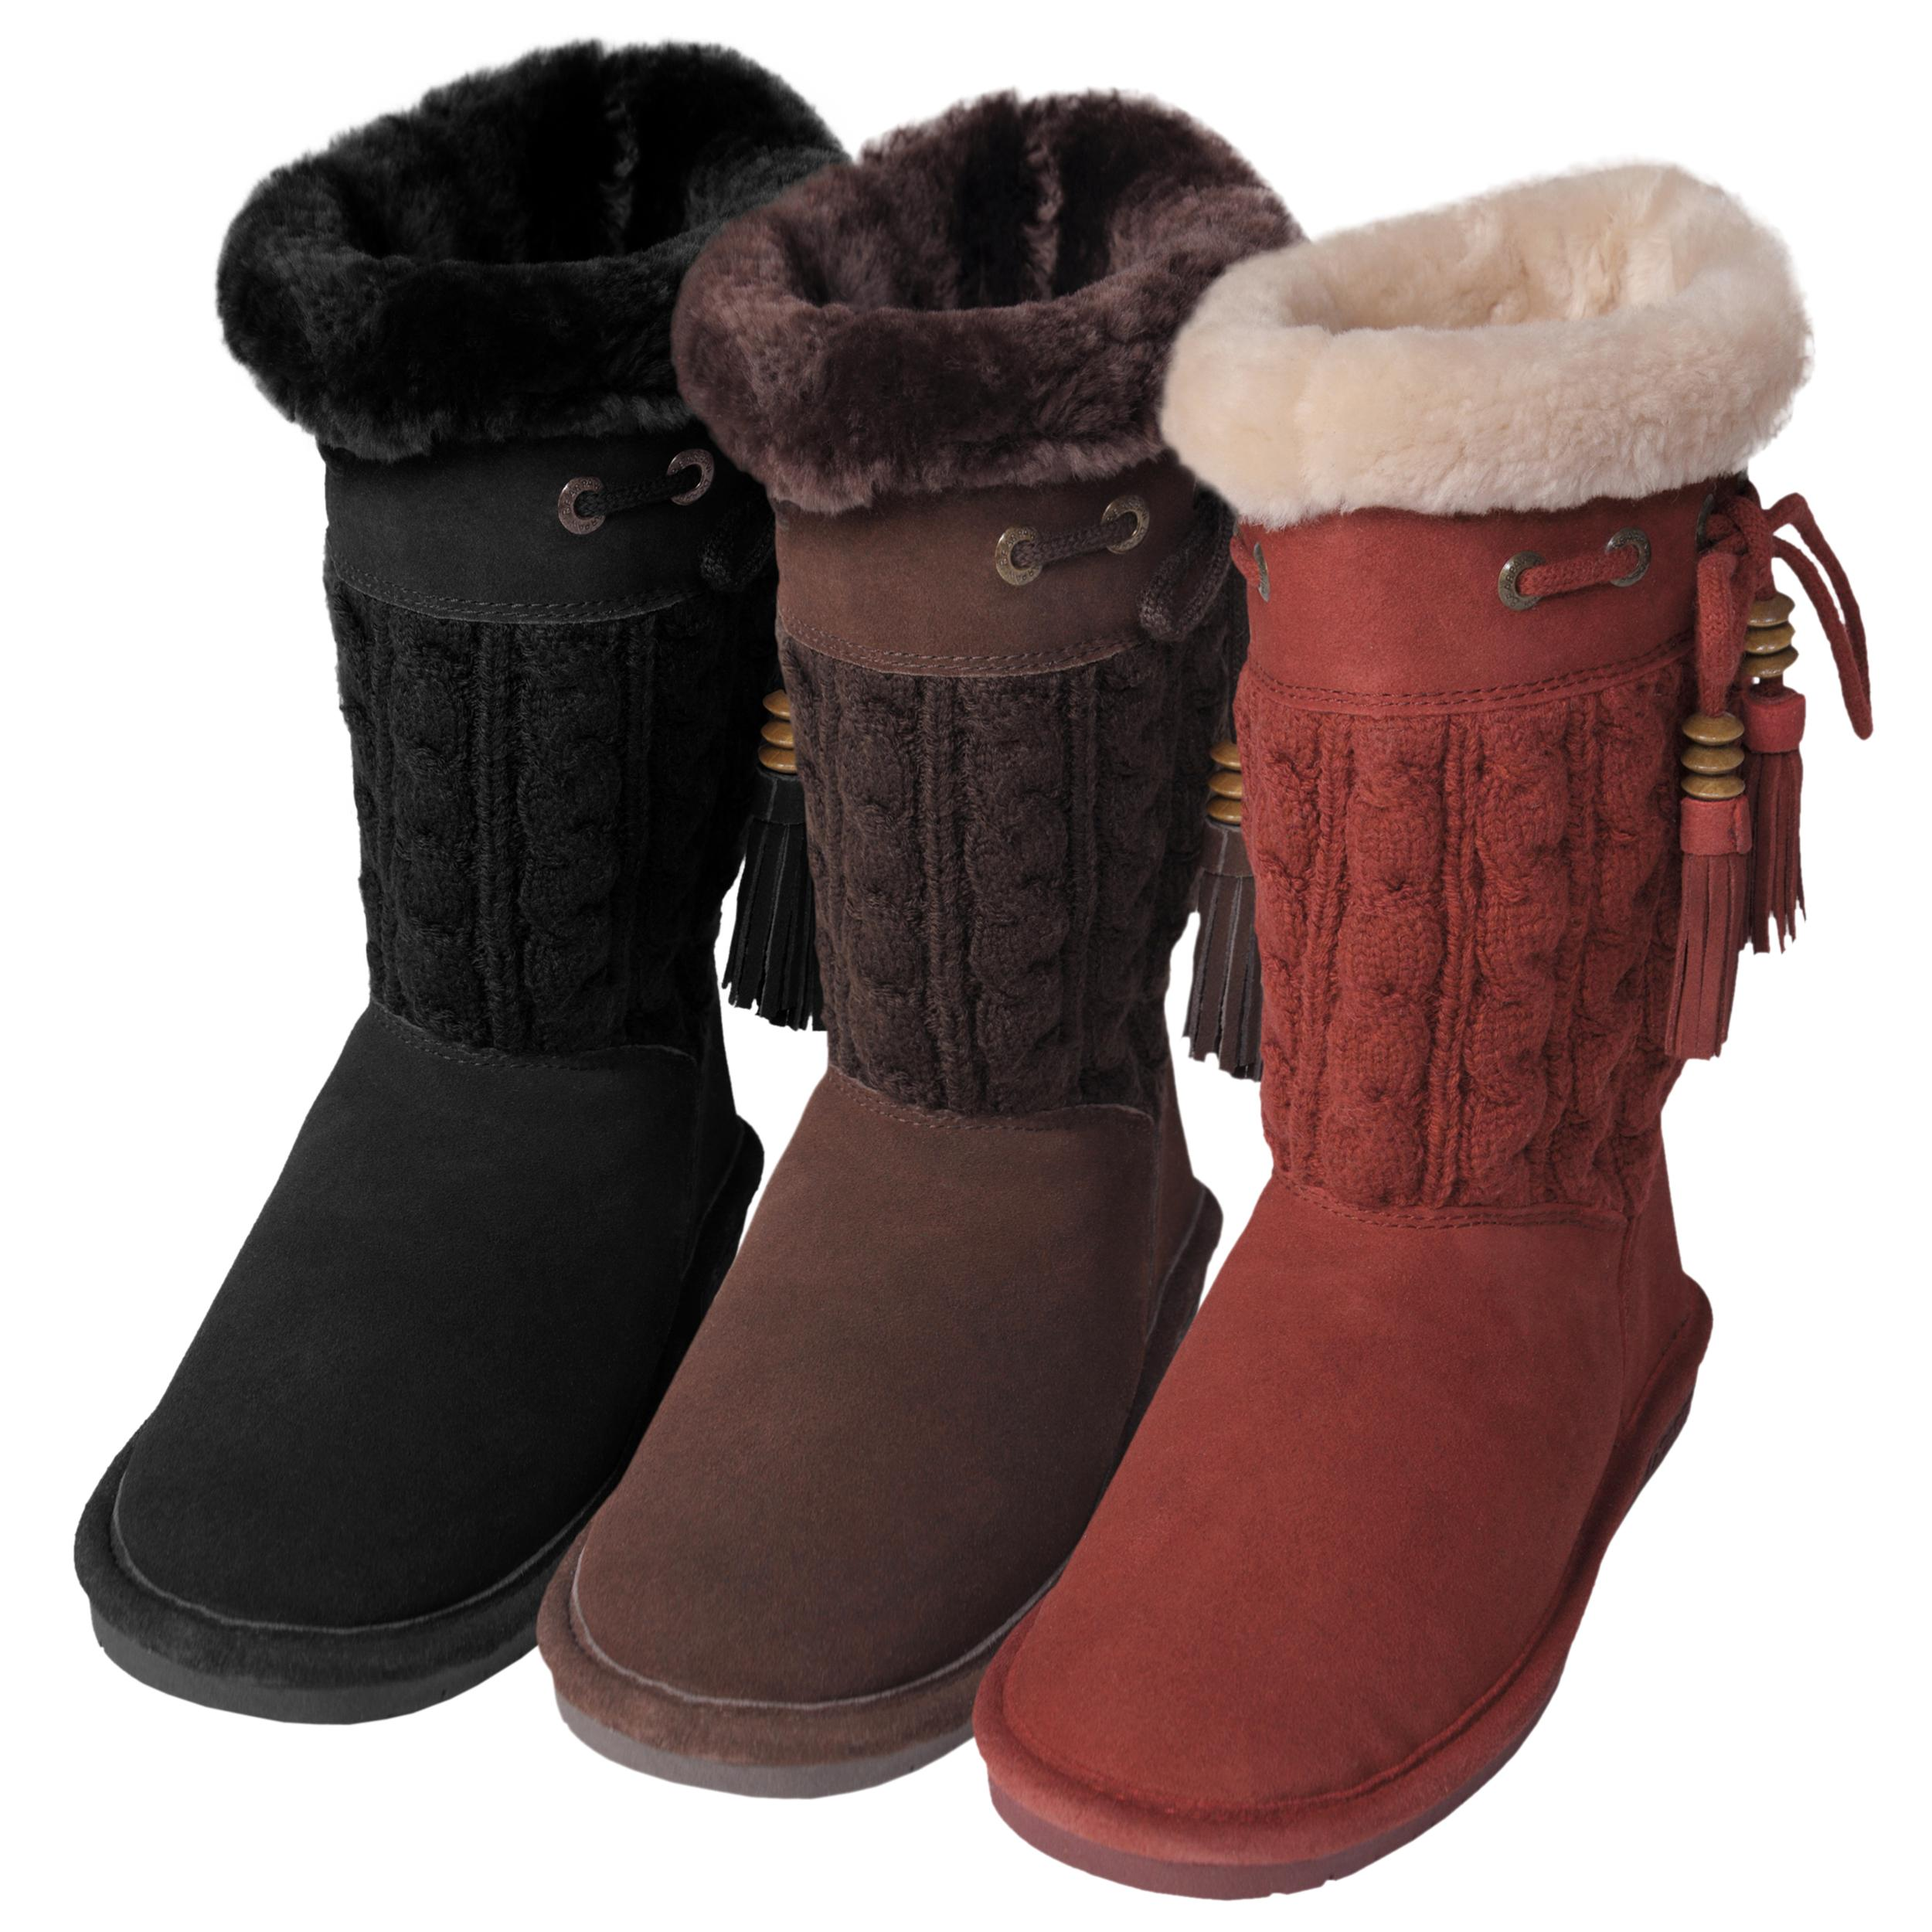 bearpaw-womens-constantine-suede-knit-sheepskin-lined-boots-l13838891